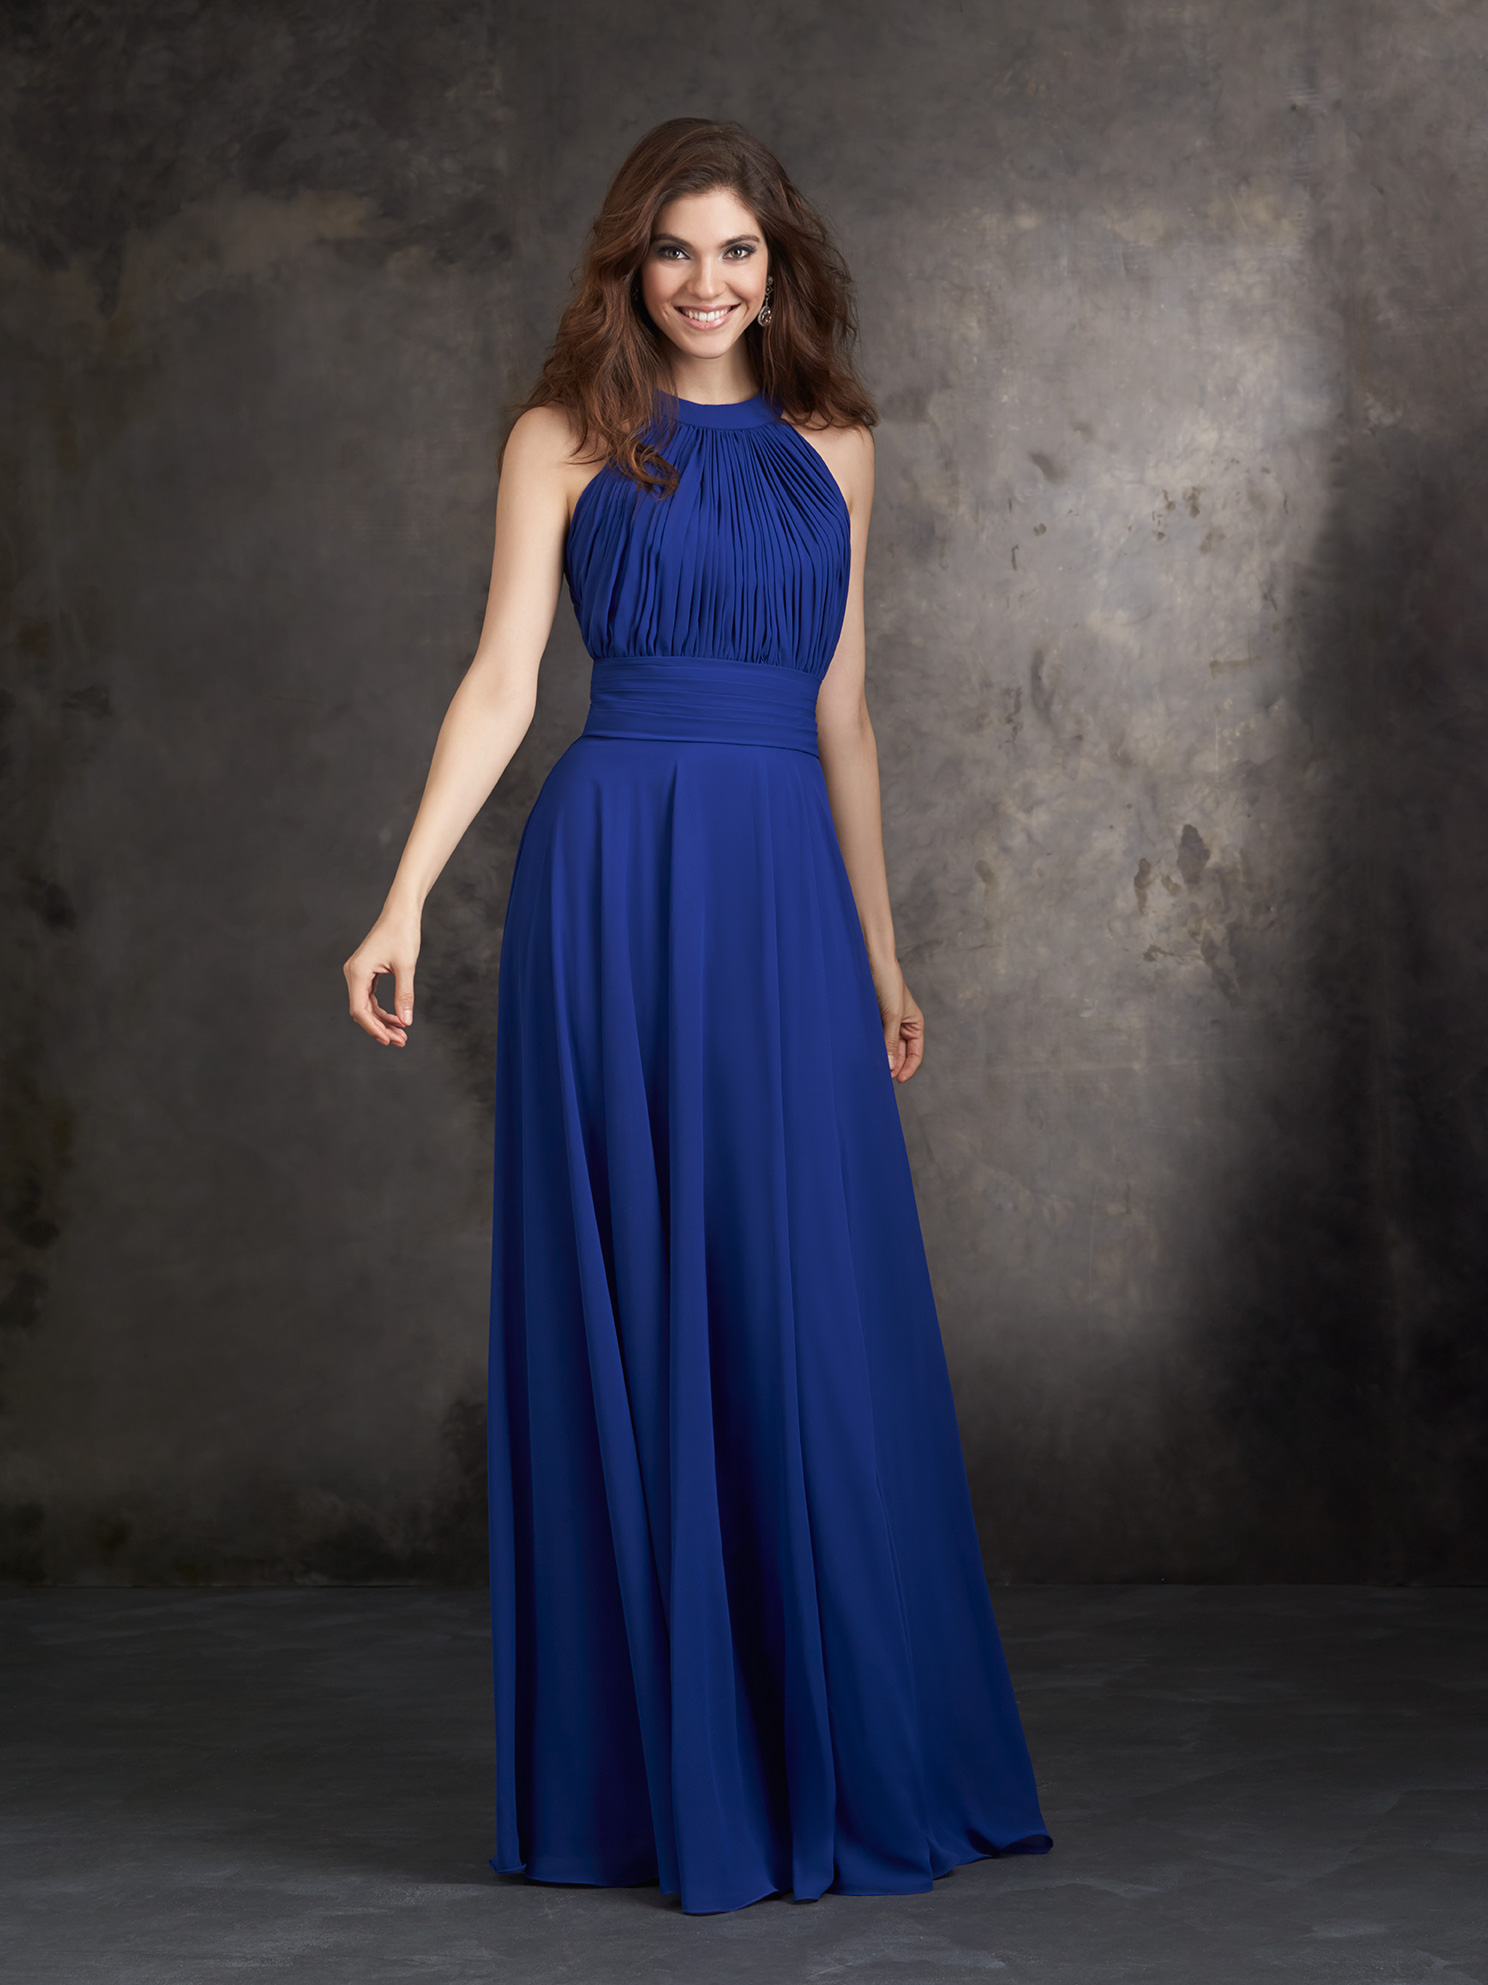 57d0756d53c Home   Bridesmaid s Dresses   Allure Bridesmaids   Allure Bridesmaids 1427.  1427f